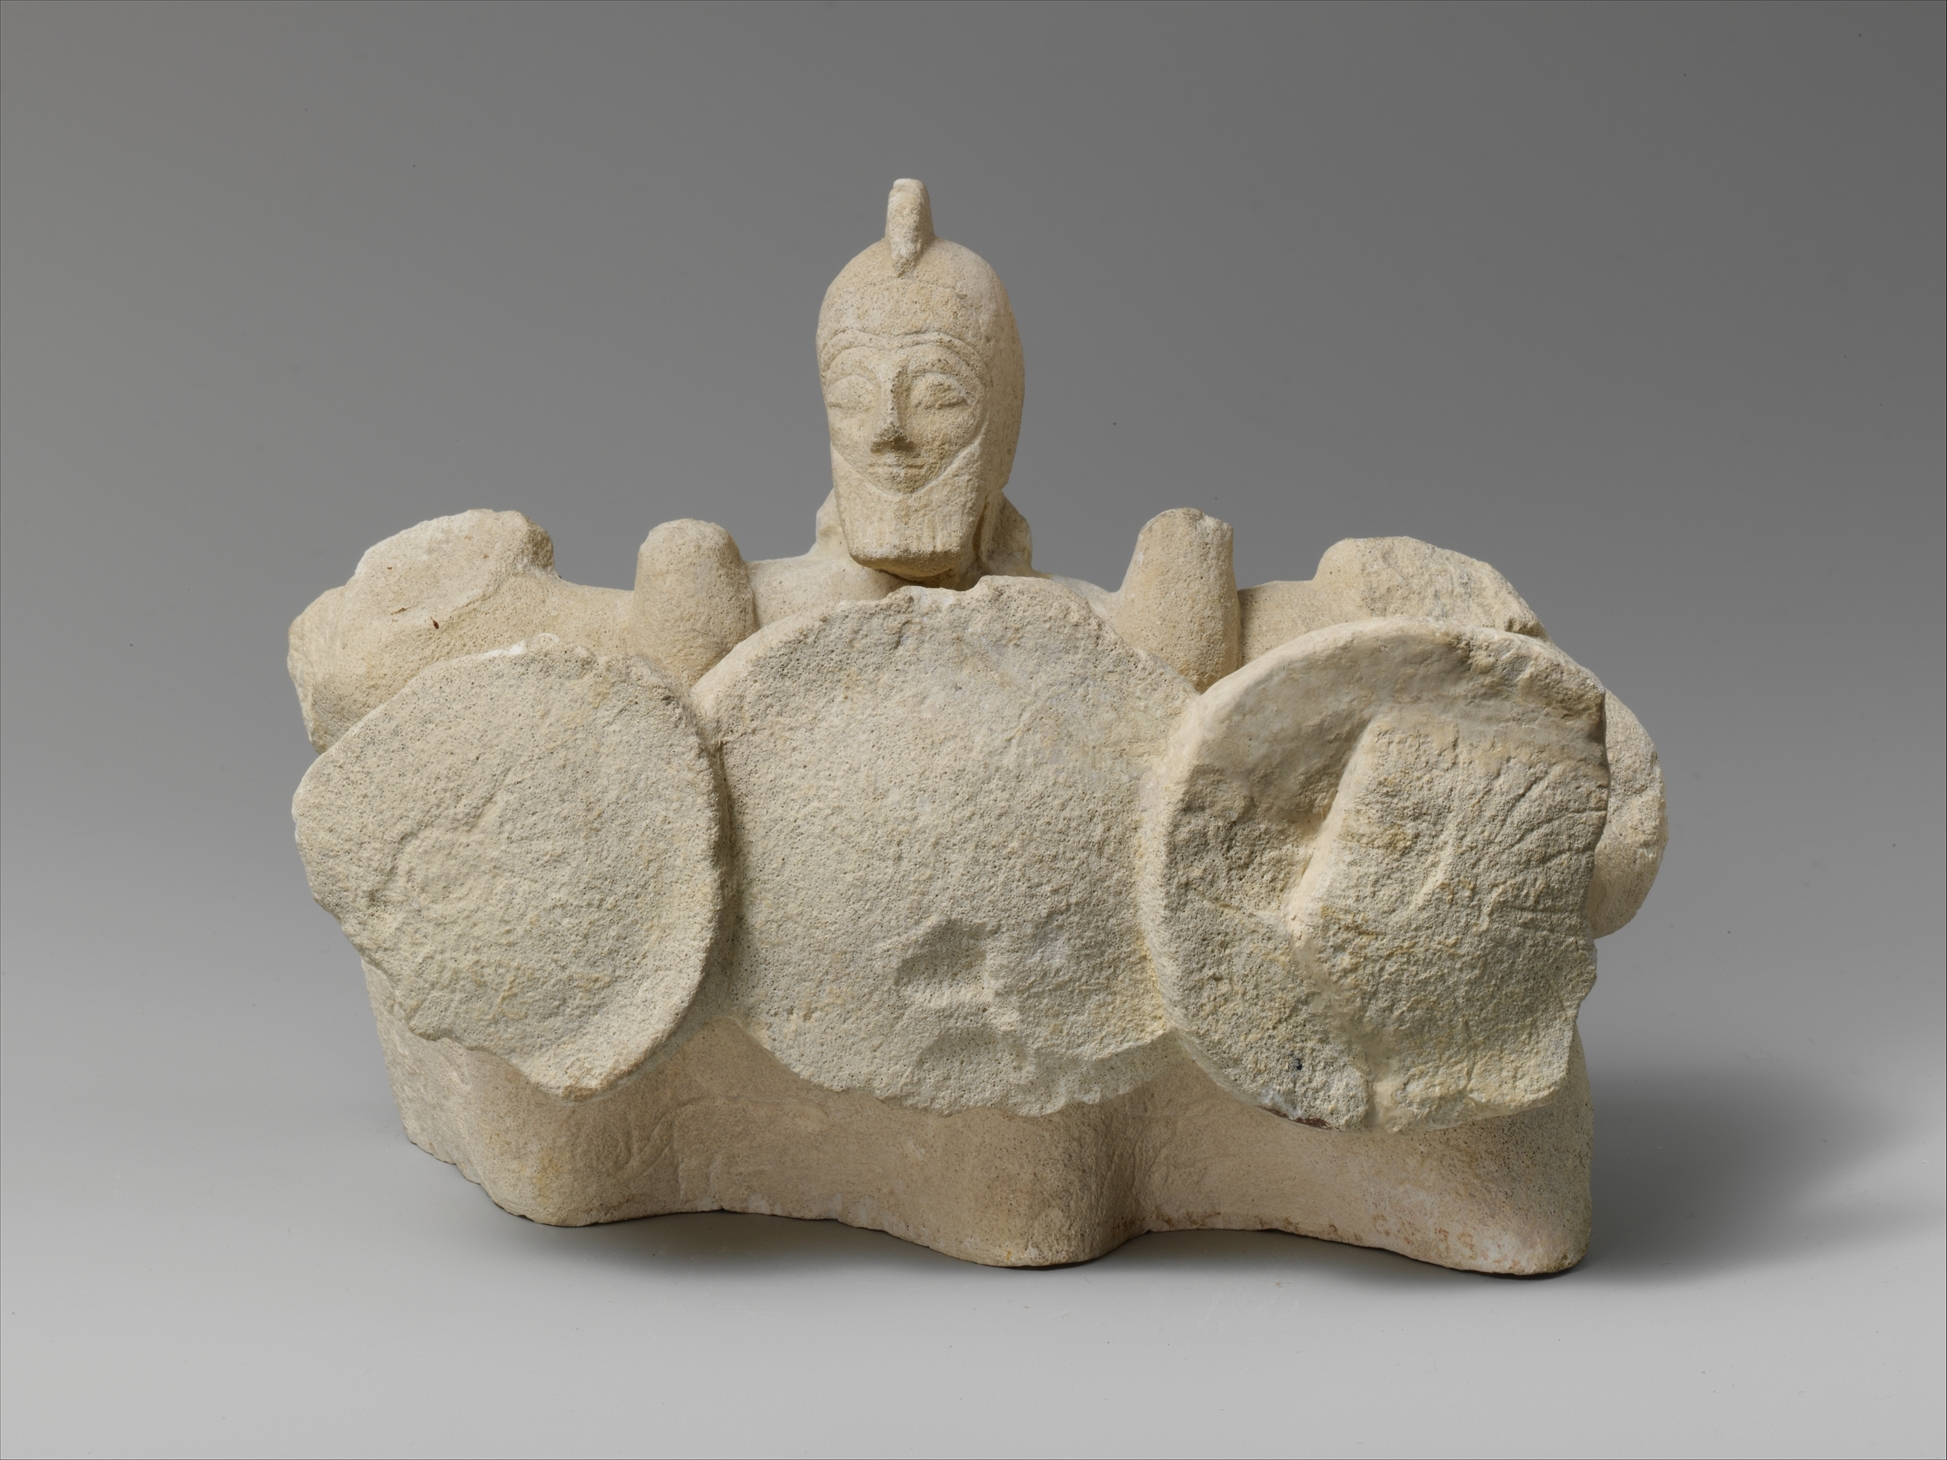 A battered statue of three men forming a shield wall with round domed shields